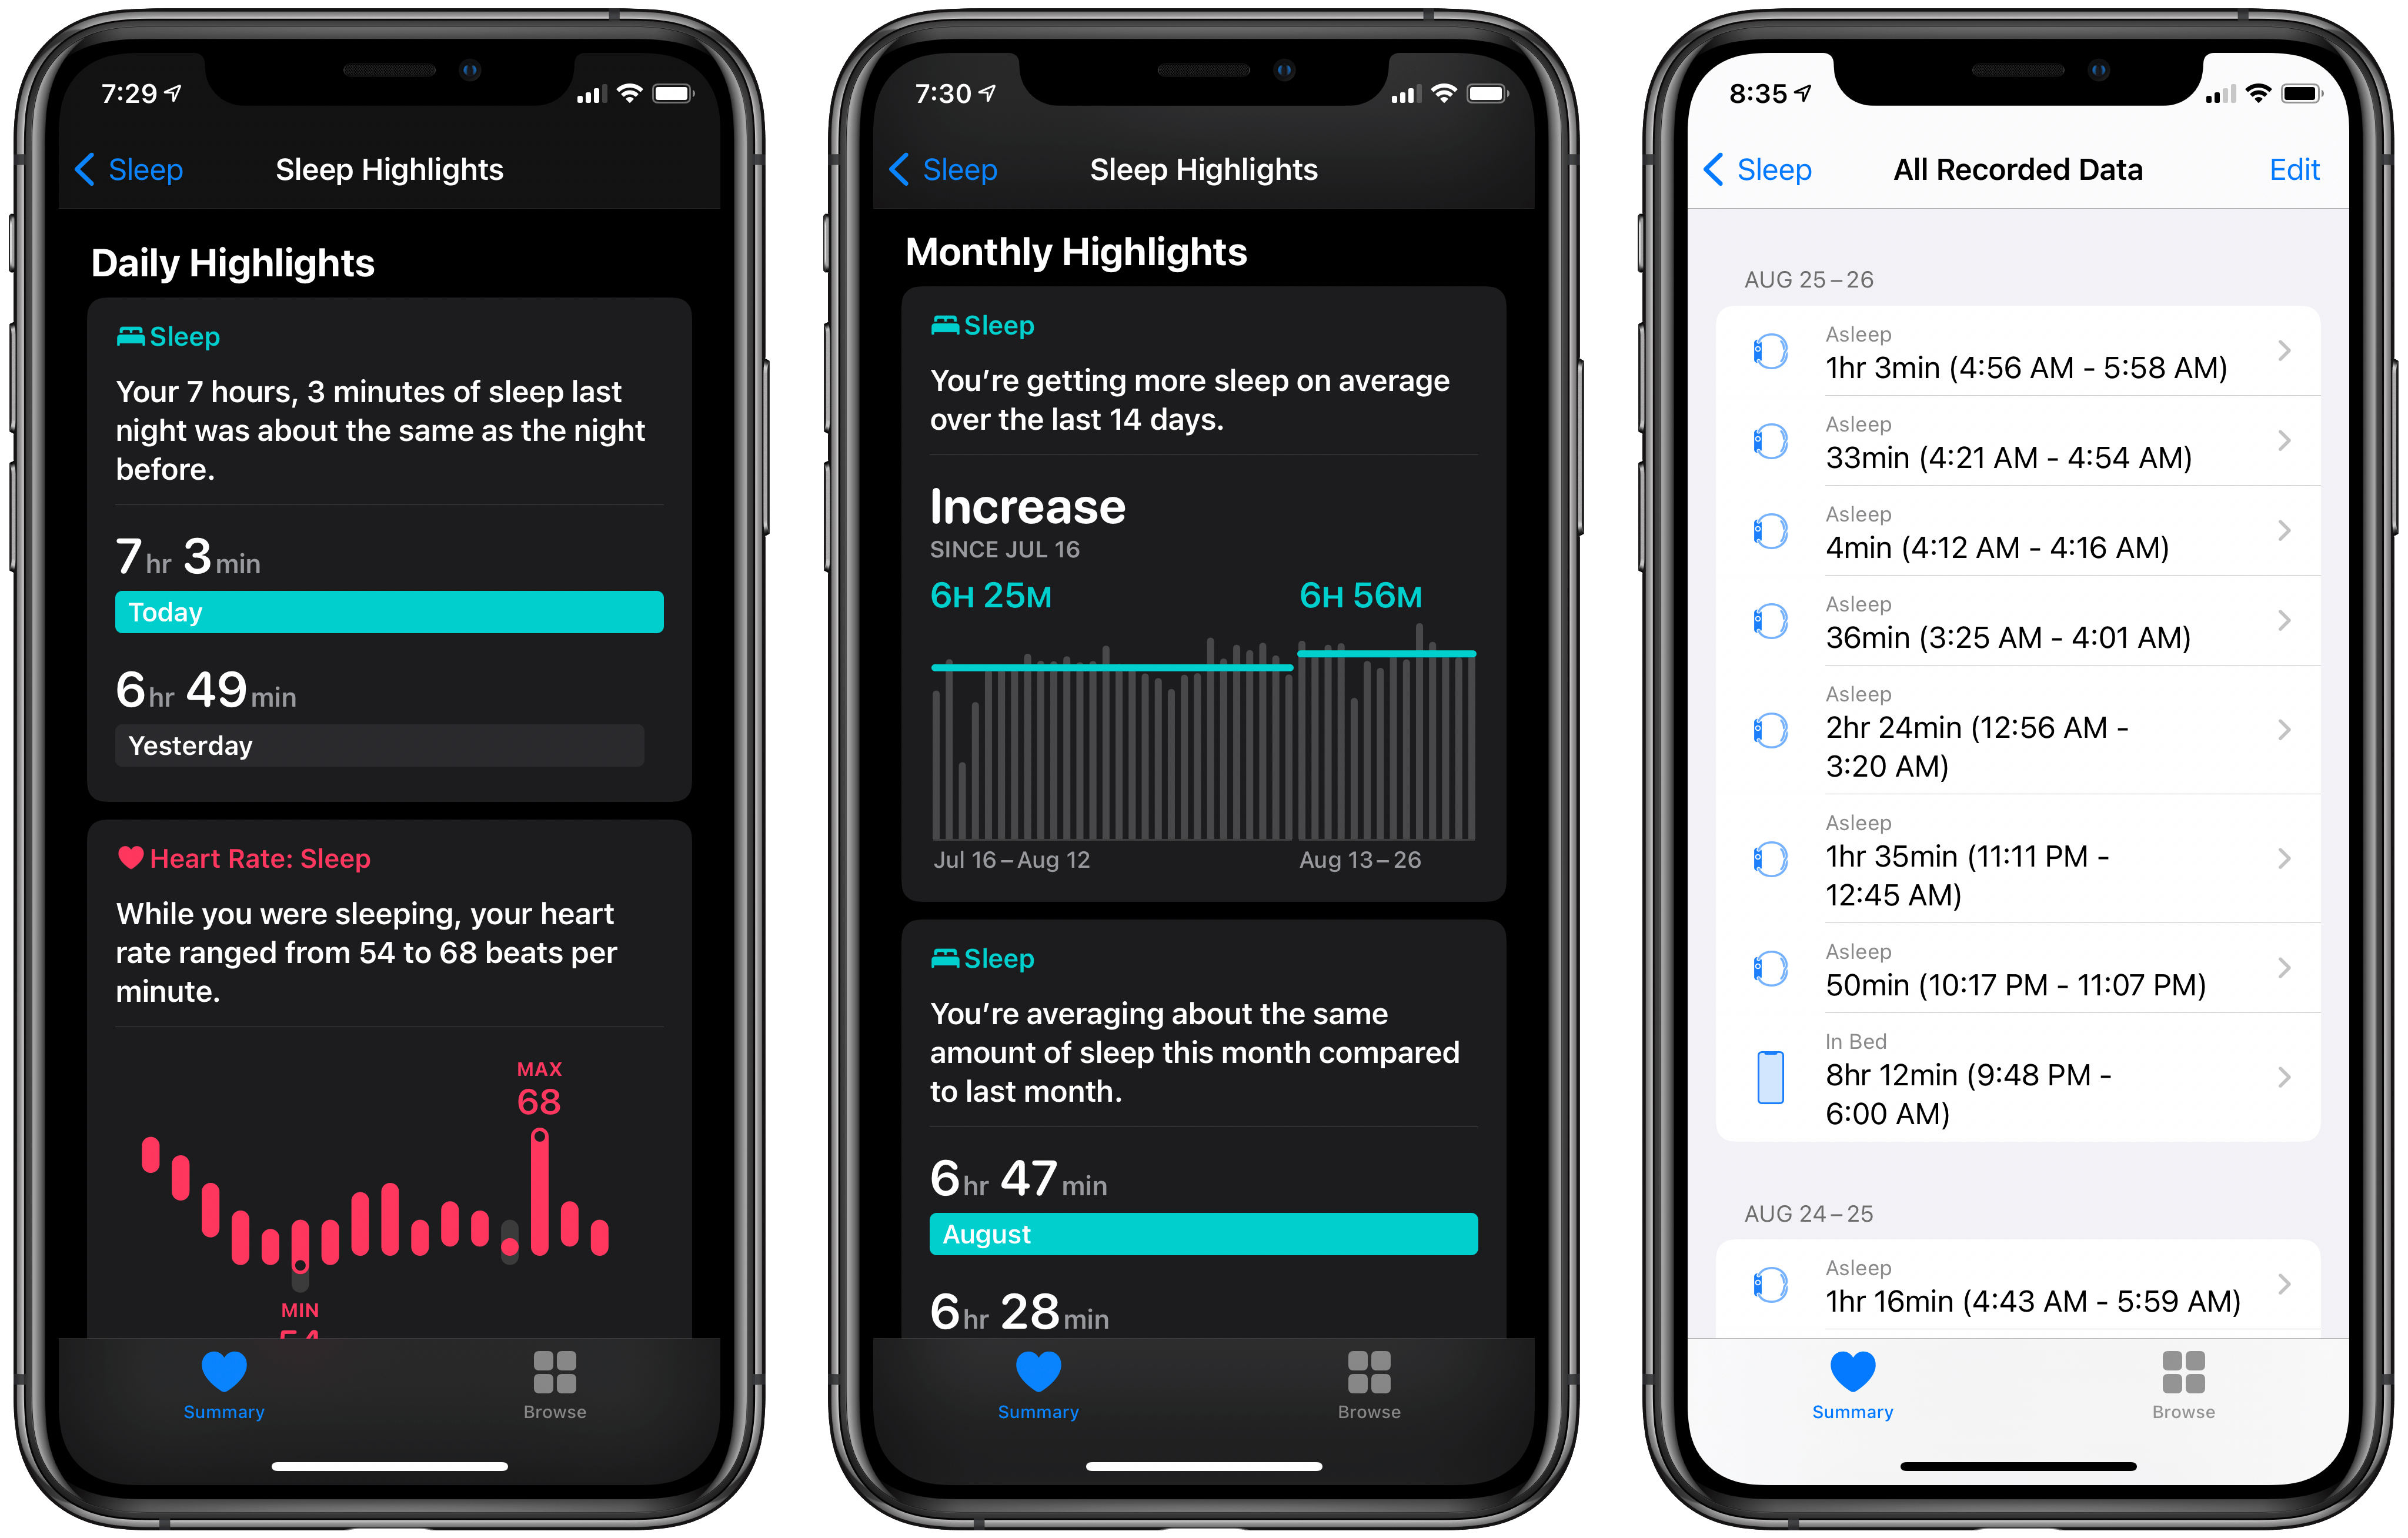 Sleep highlights (left and center) and viewing all data (right).